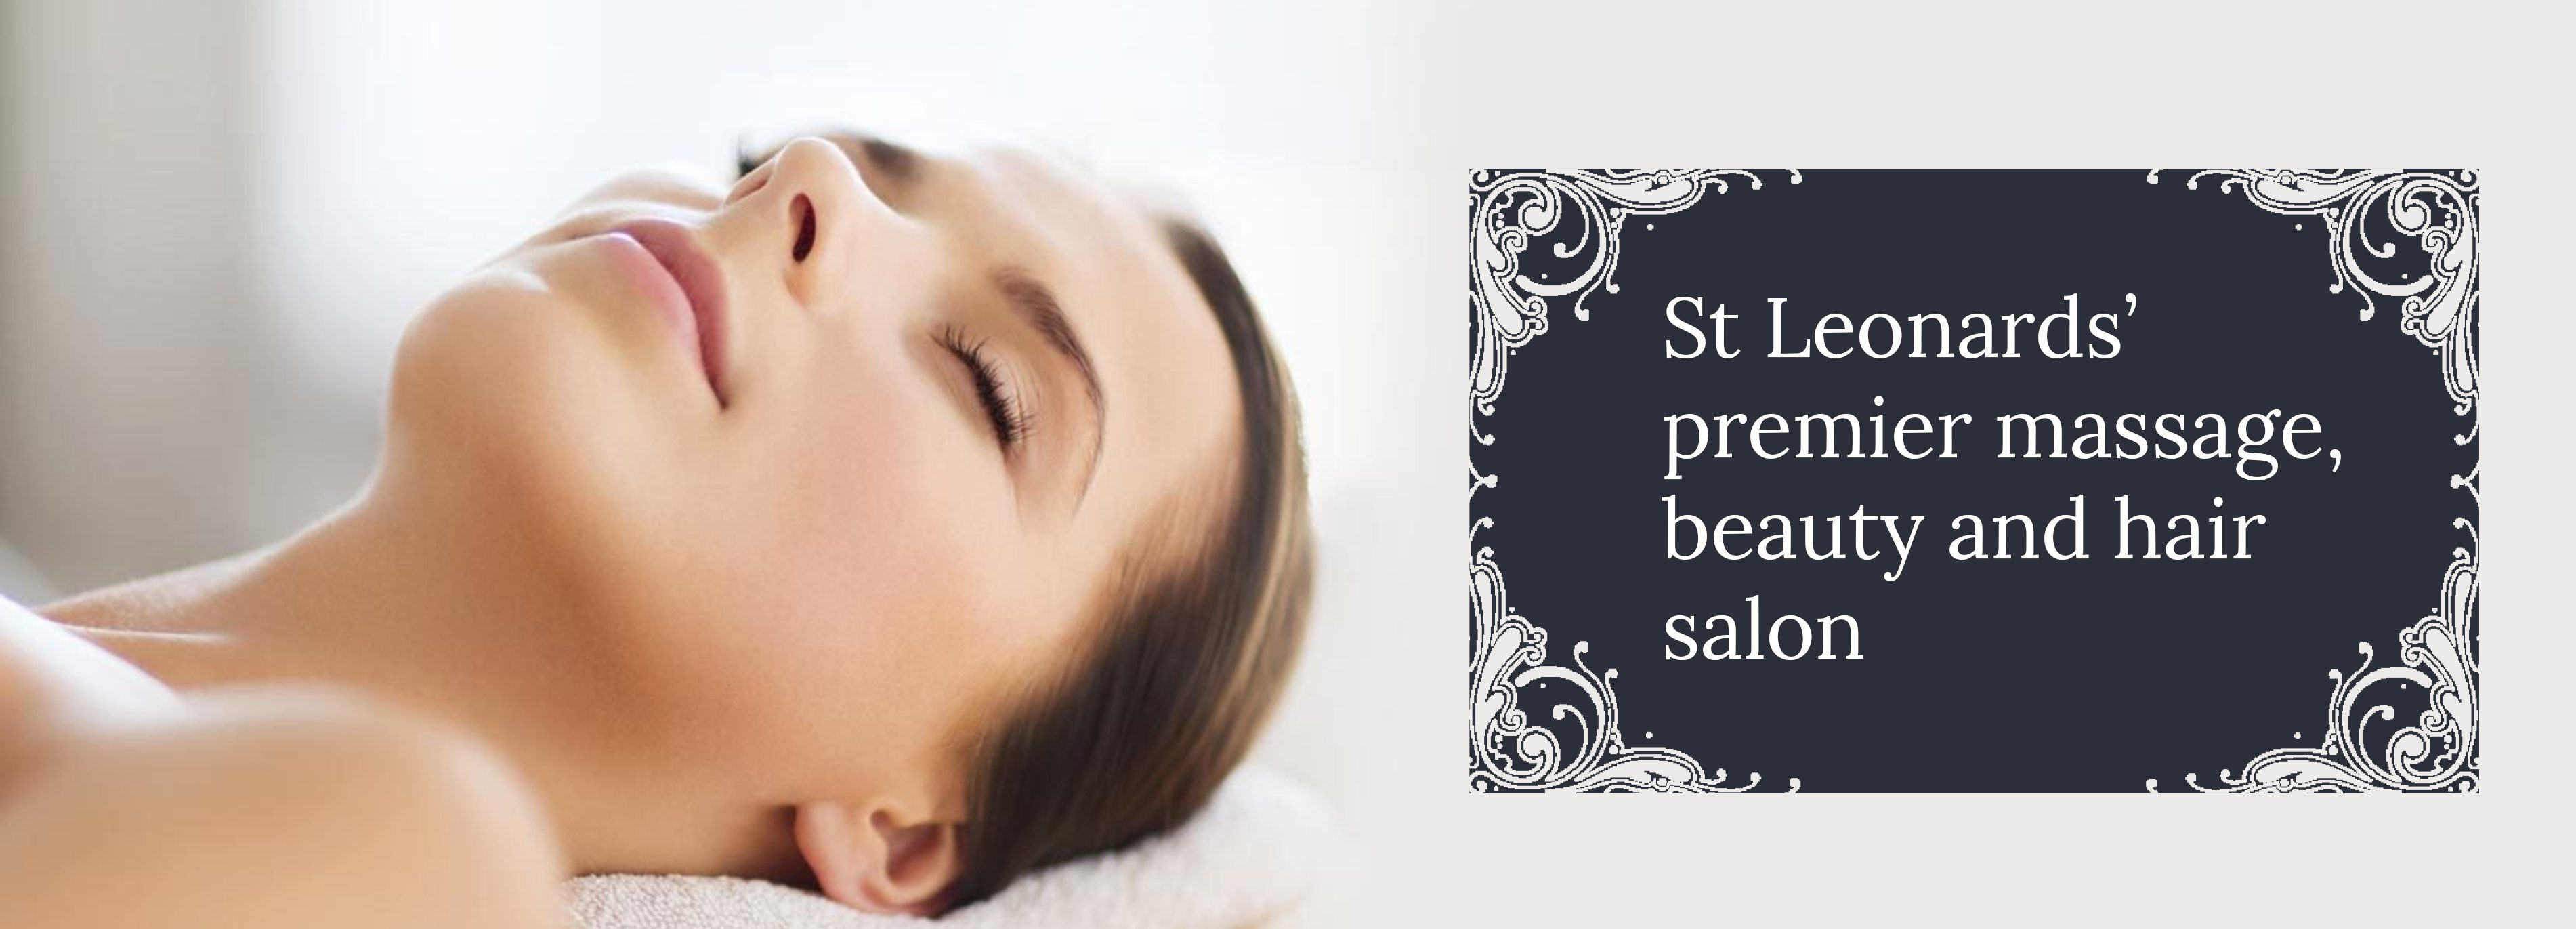 St Leonards' premier massage, beauty and hair salon